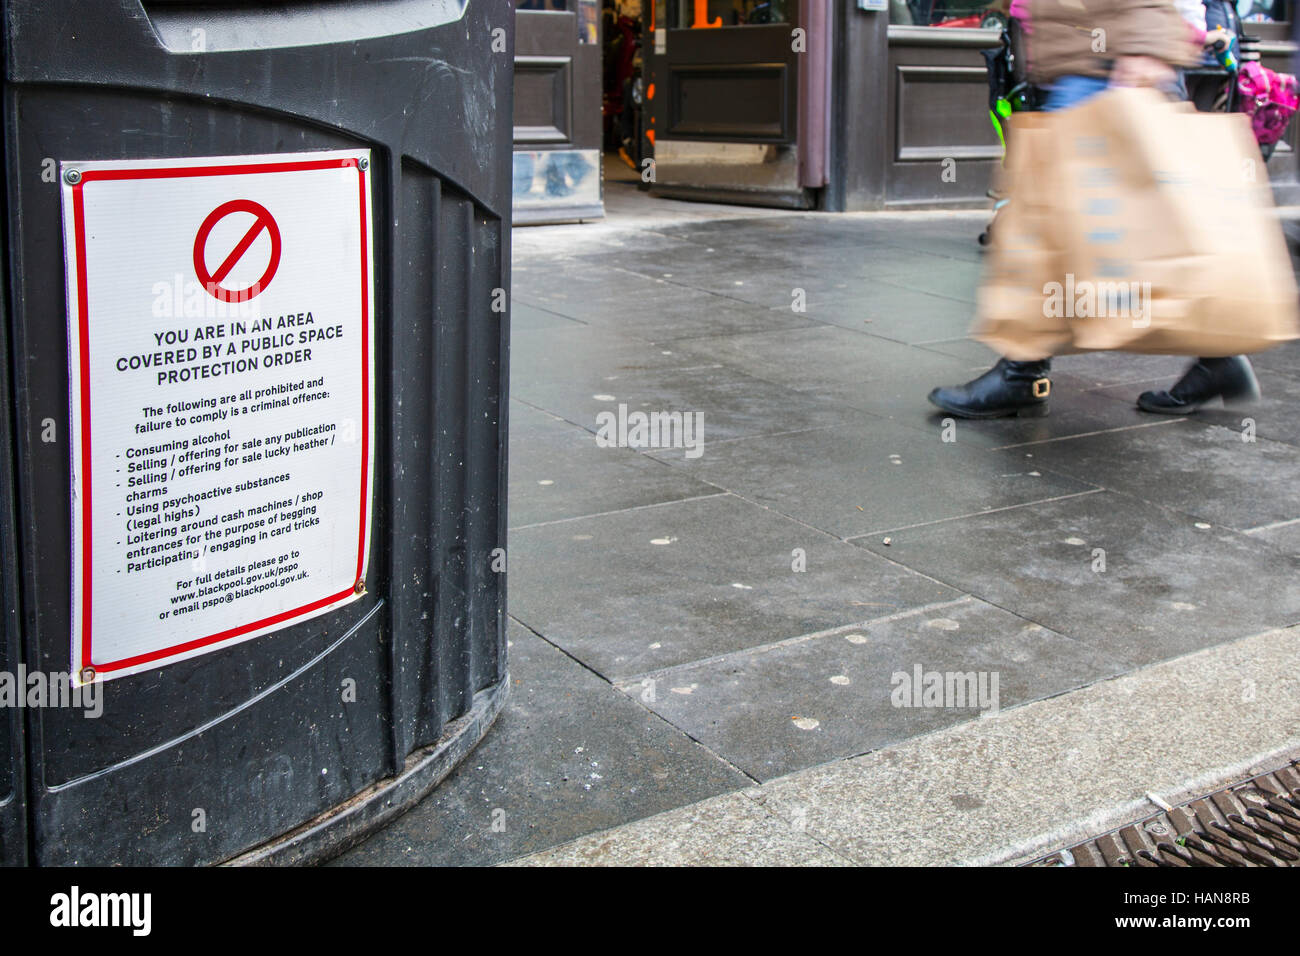 Public Space Protection Order, is order that identifies the public place and prohibits specified things being done - Stock Image